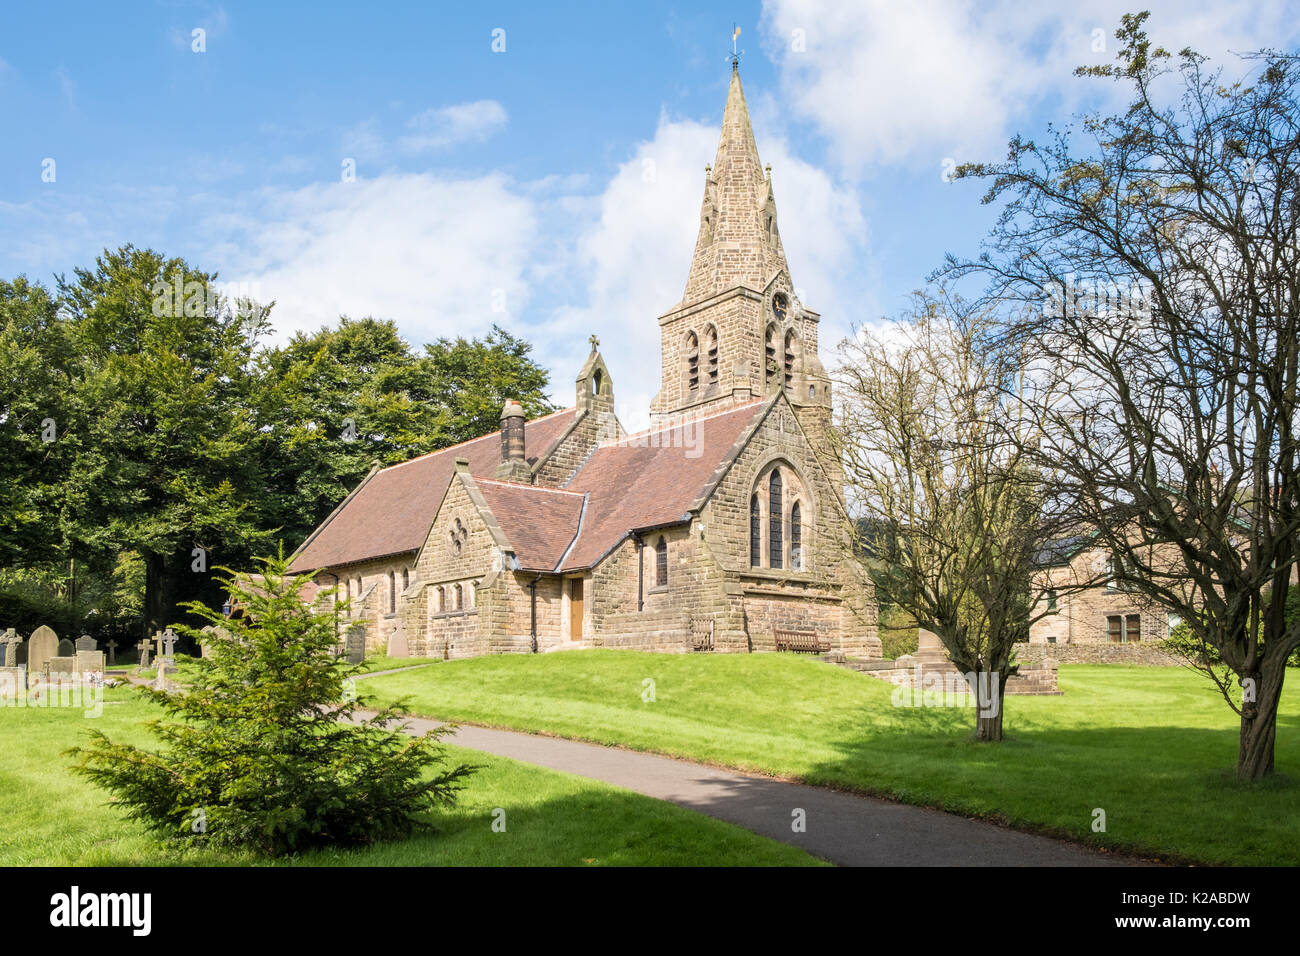 Edale Church. The Holy and Undivided Trinity Church in the village of Edale, Derbyshire, England, UK - Stock Image